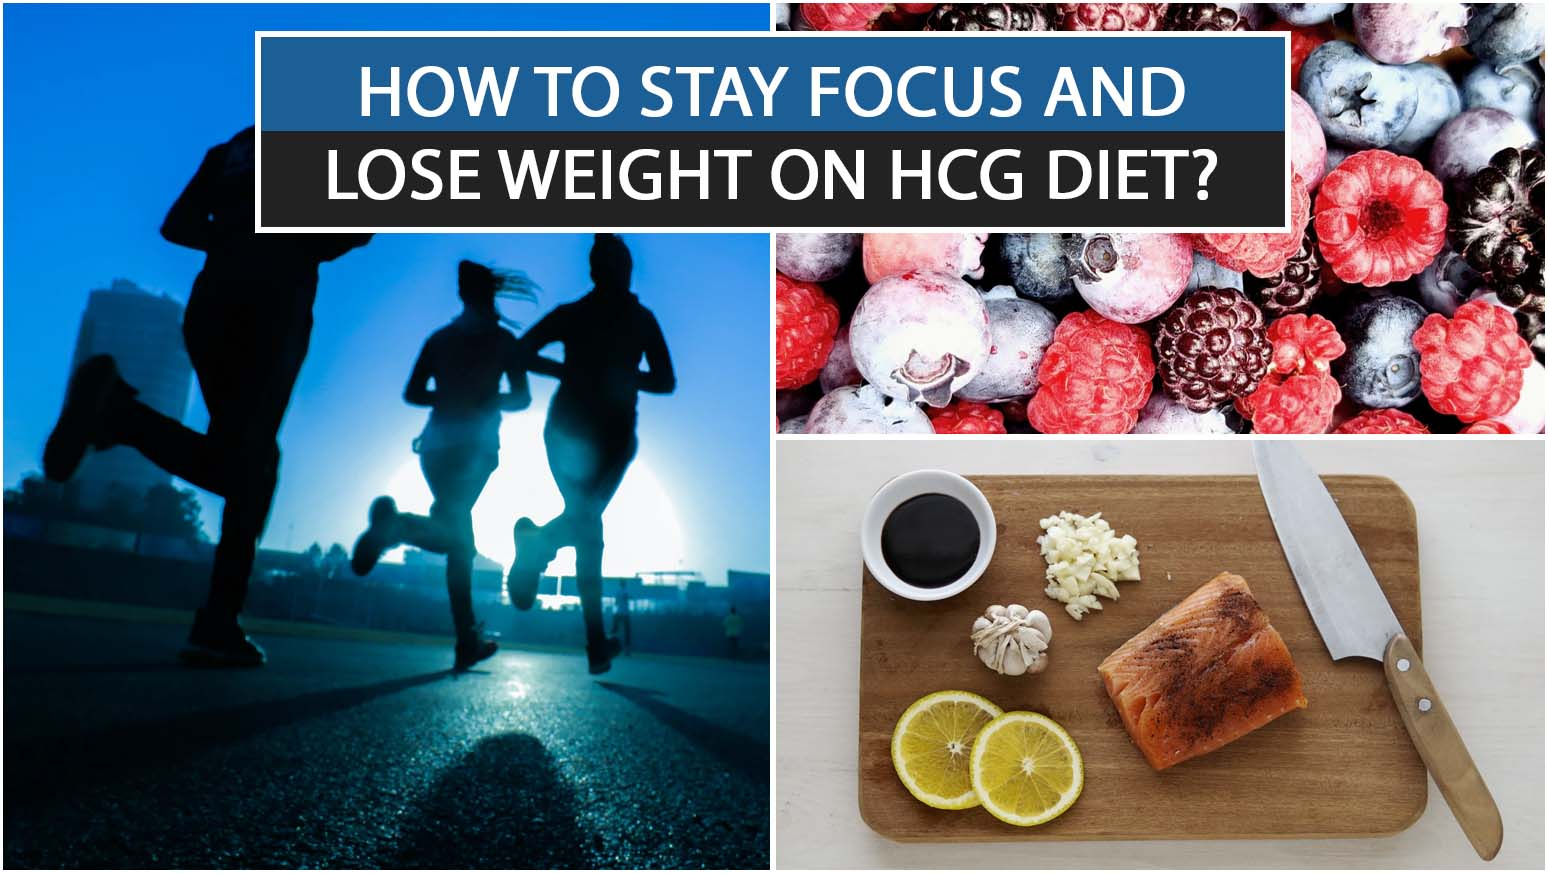 HOW TO STAY FOCUS AND LOSE WEIGHT ON HCG DIET